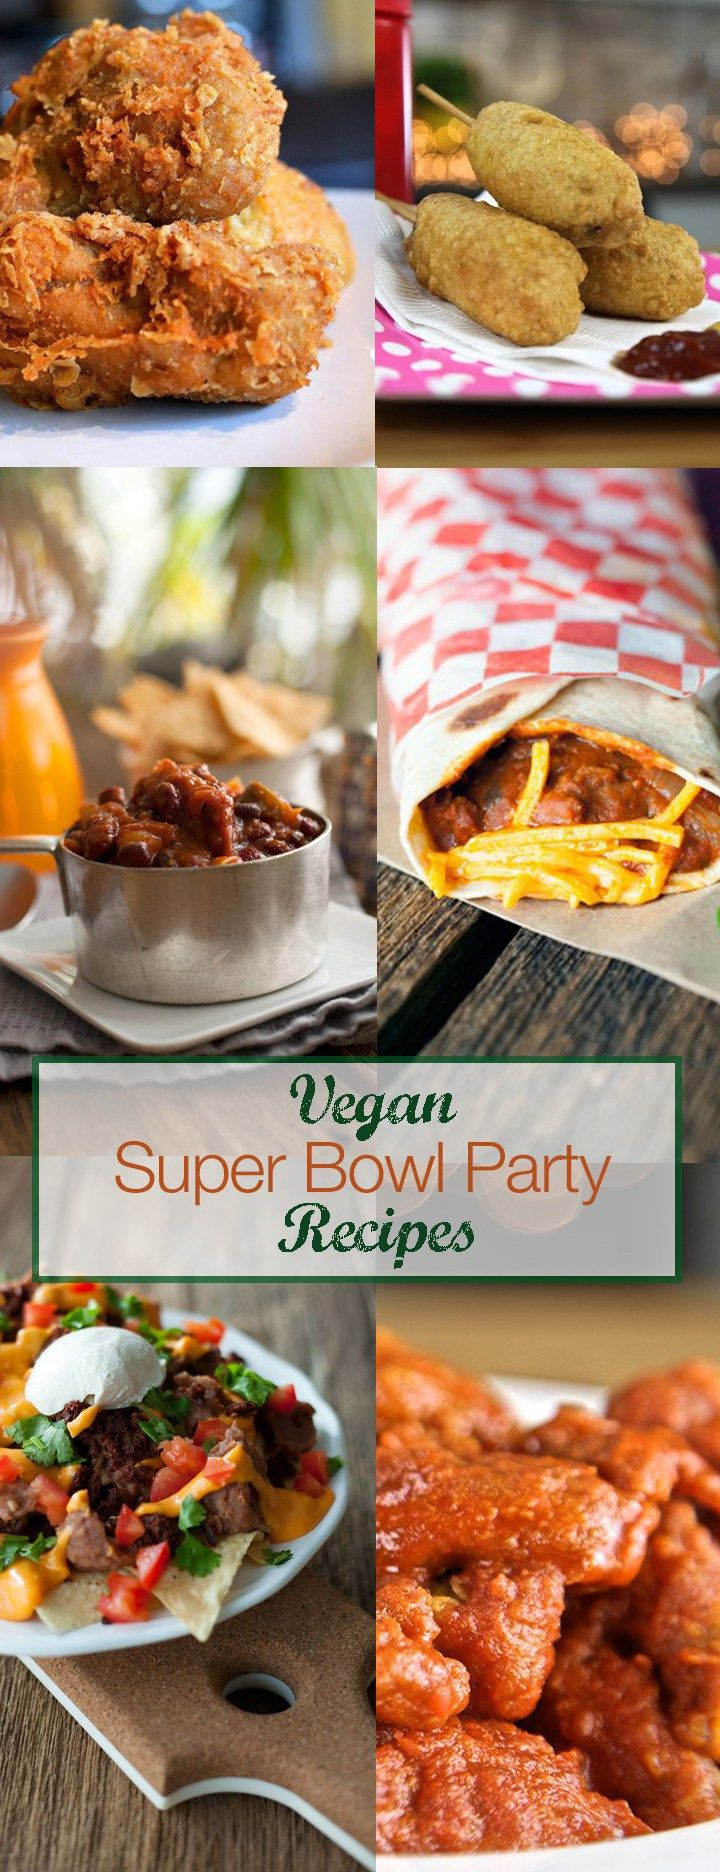 As a vegan there are plenty of veg-friendly dishes that are just as gluttonous and satisfying as their traditional counterpart. From cheesy dips to messy nachos and ooey-gooey wings, here are my favourite vegan tailgate and super bowl party foods. super bowl recipes vegan